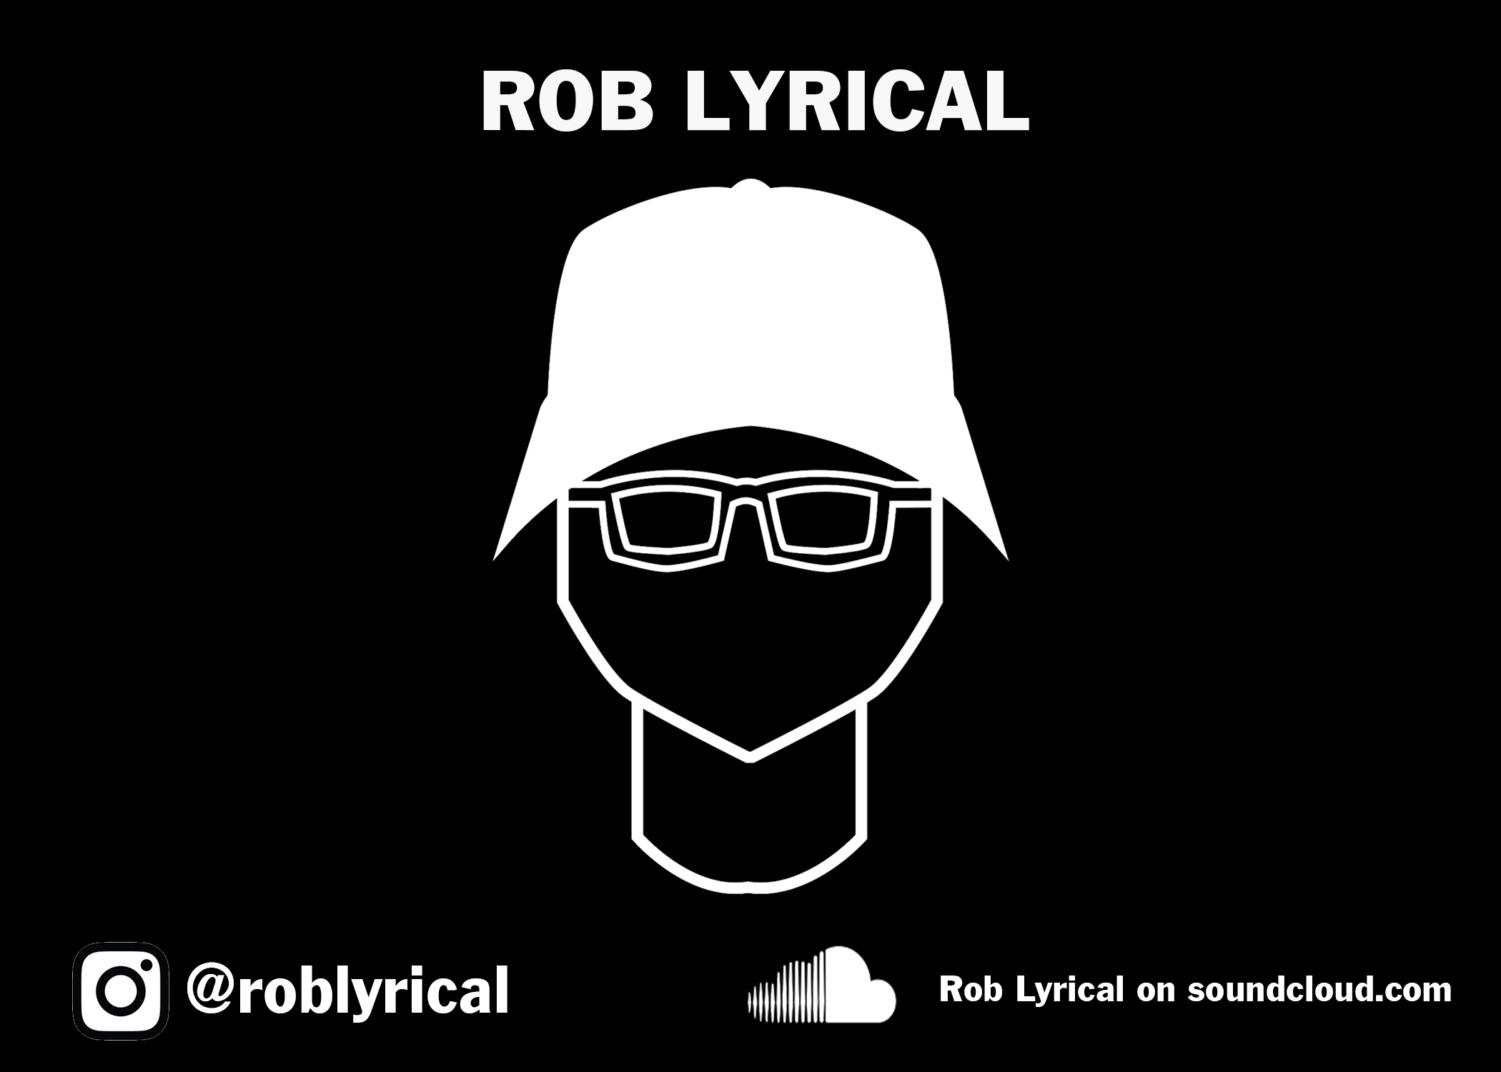 "Rob Lyrical is an AMA winning, Grammy nominated, and four time multi-platinum music producer from the Chicagoland area. He is a member of Chinza Fly, a collective of producers best known for creating the instrumentals for ""Work"" by A$AP Ferg and ""Shanghai"" by Nicki Minaj. In this podcast, Rob discusses his influences within music as well as how his most successful records came to fruition."